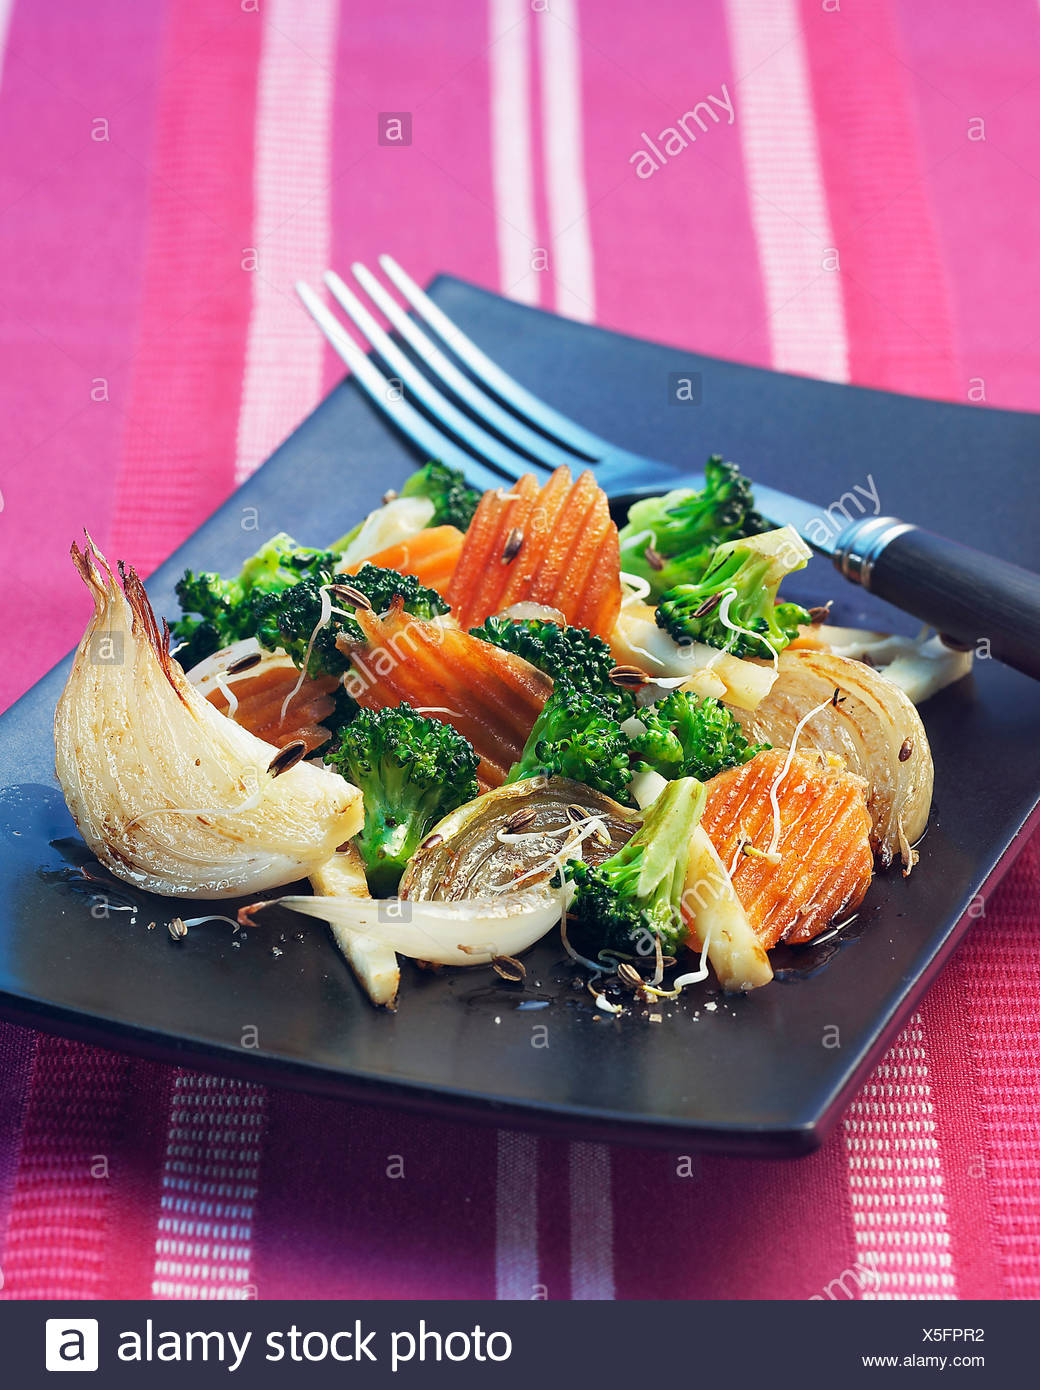 Pan-fried vegetables with sprouts Stock Photo